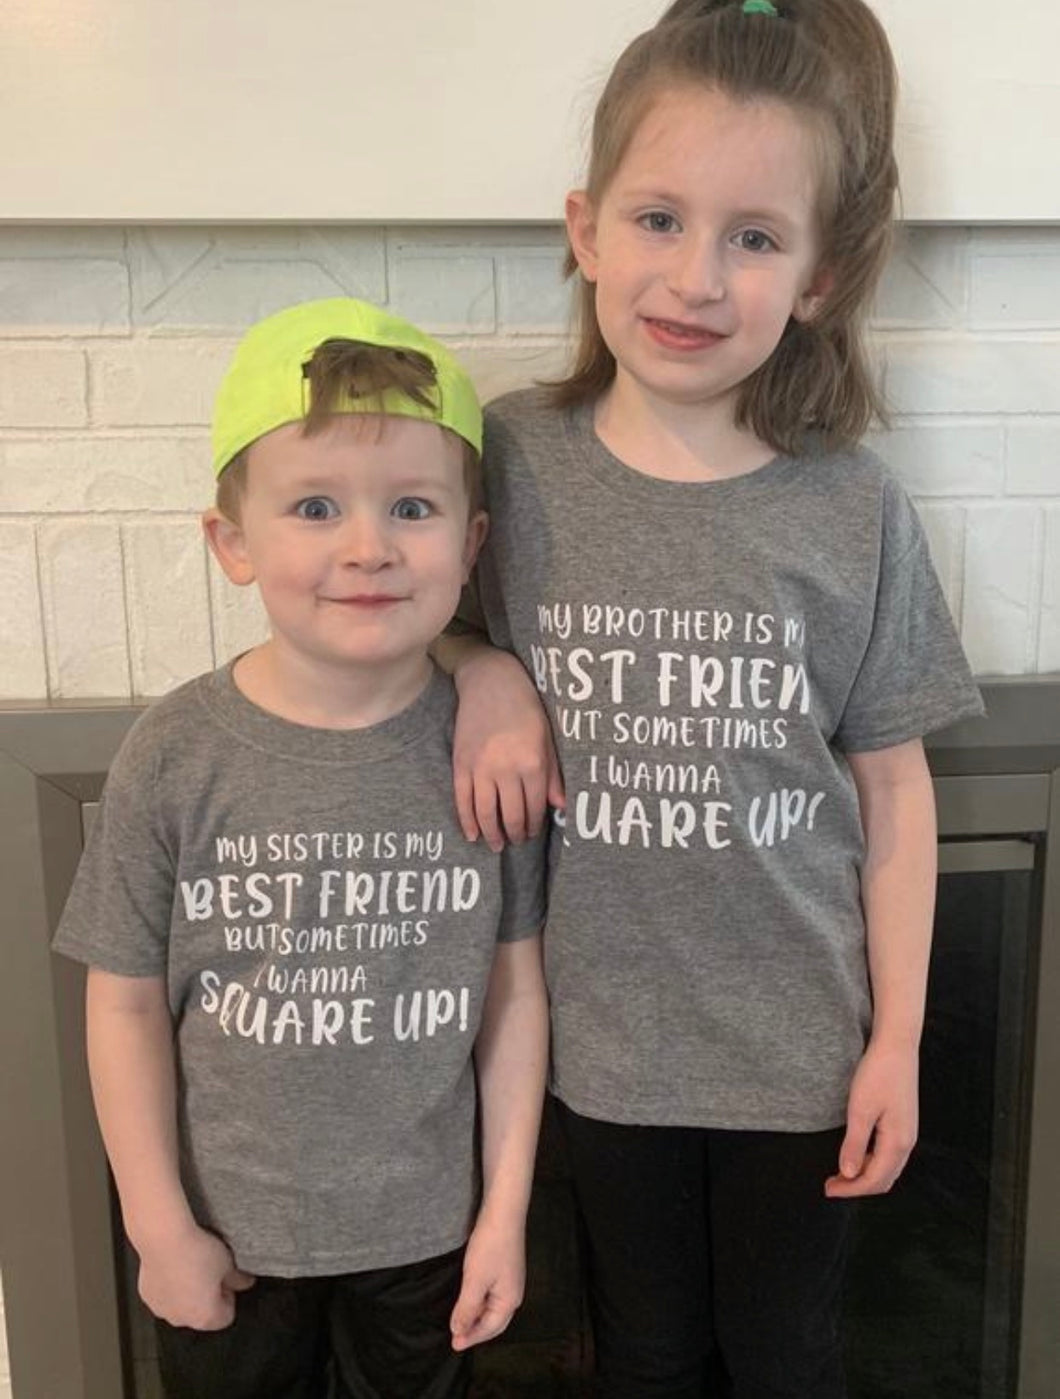 My brother / sister is my best friend but sometimes i wanna square up funny kids graphic tee tshirt shirt. Sibling shirts. - Mavictoria Designs Hot Press Express